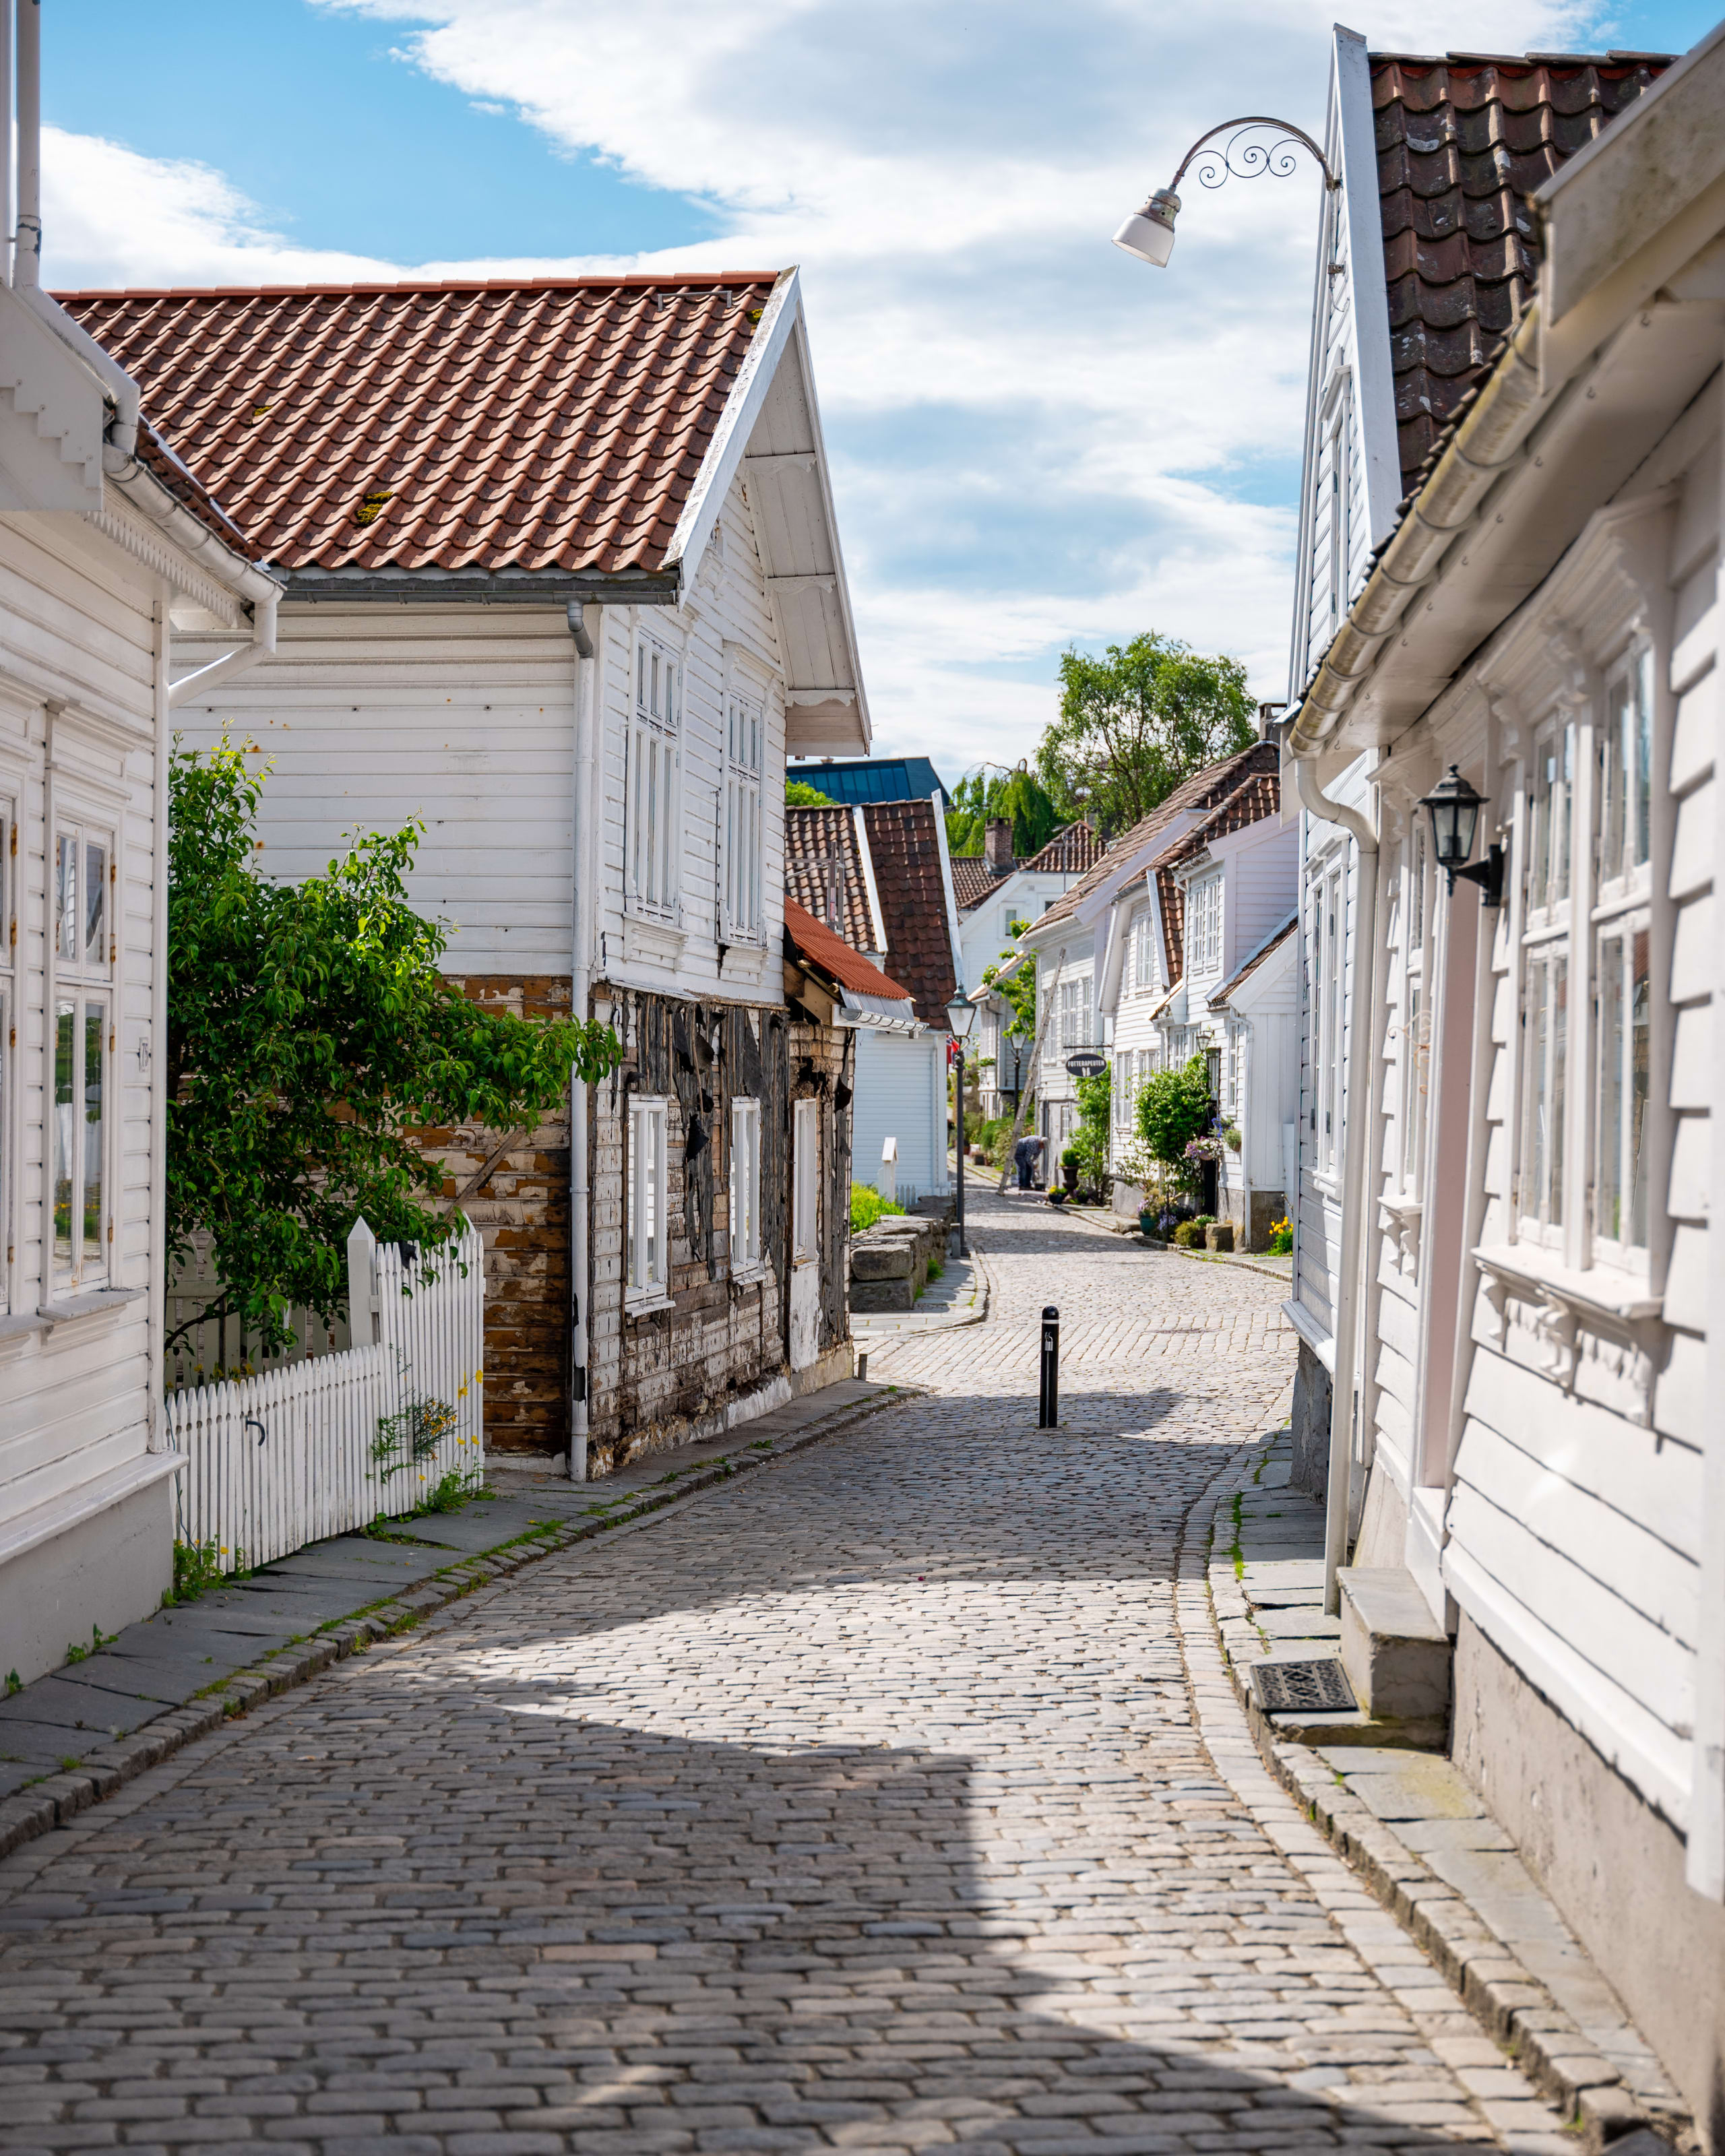 Walking street in the old parts of Stavanger